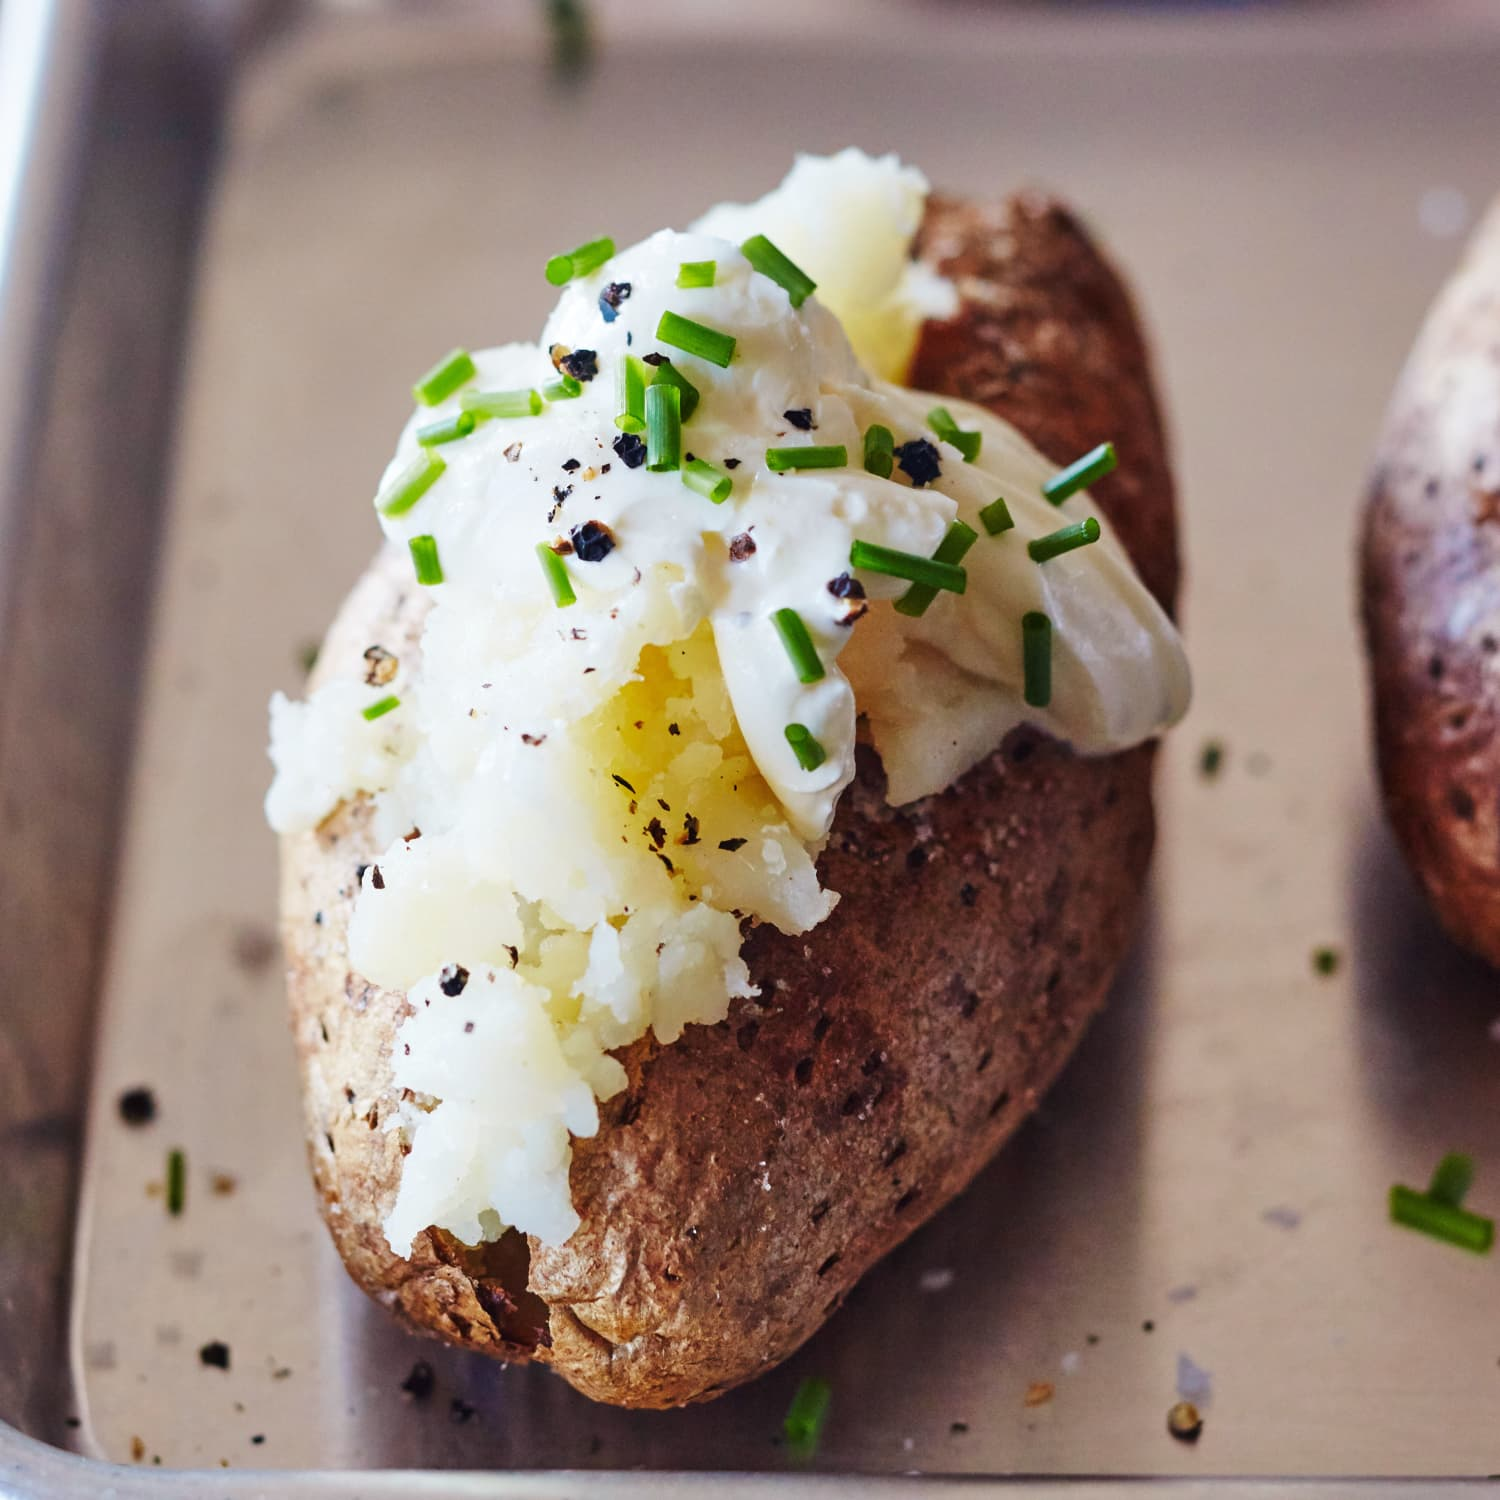 A DIFFERENT APPROACH TO BAKING POTATOES IN AN OVEN